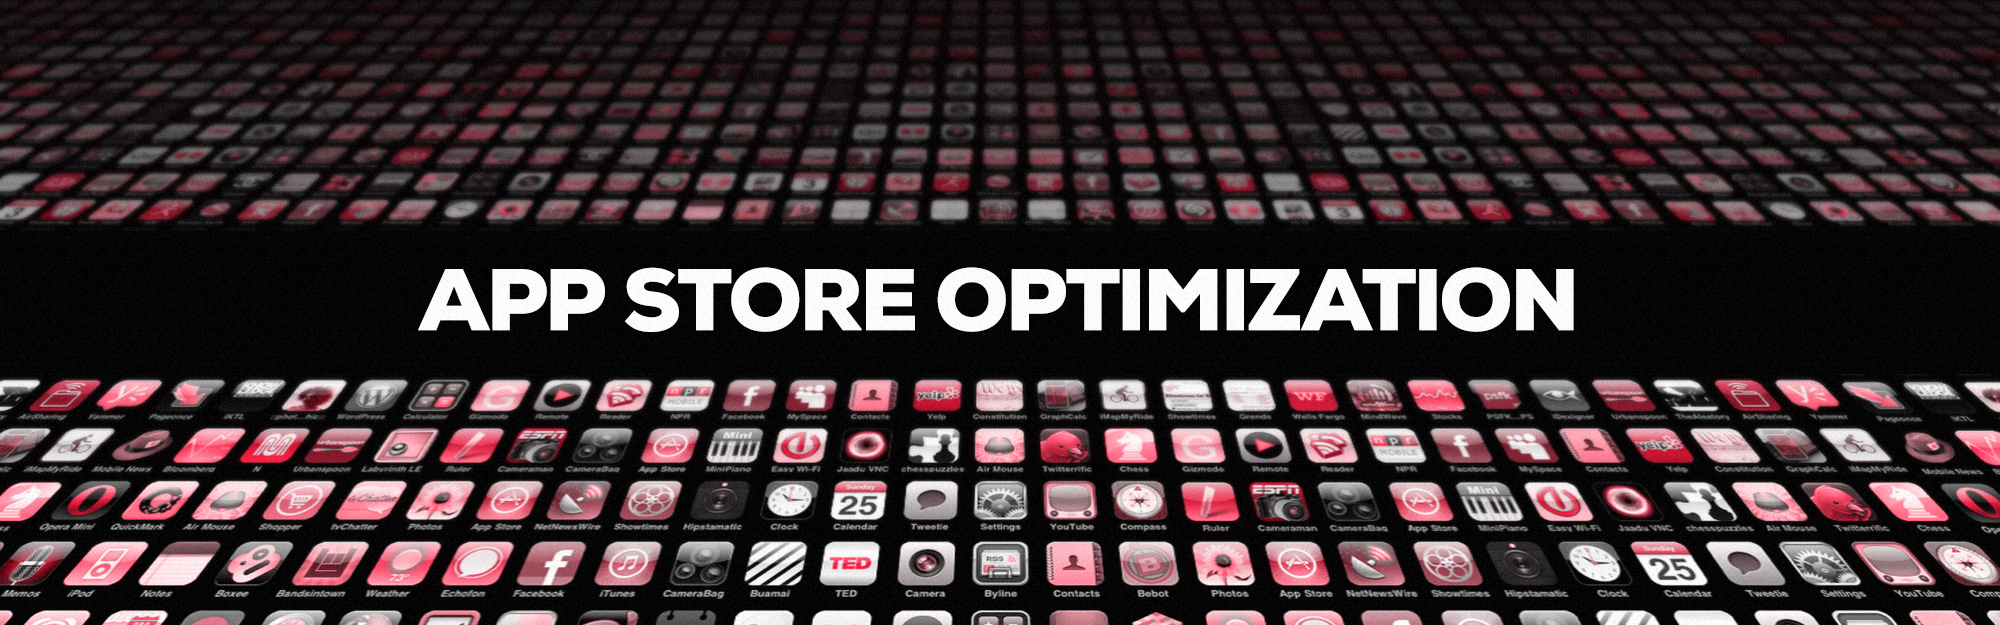 App Store Optimization: cos'è, come funziona e perché è importante l'ASO